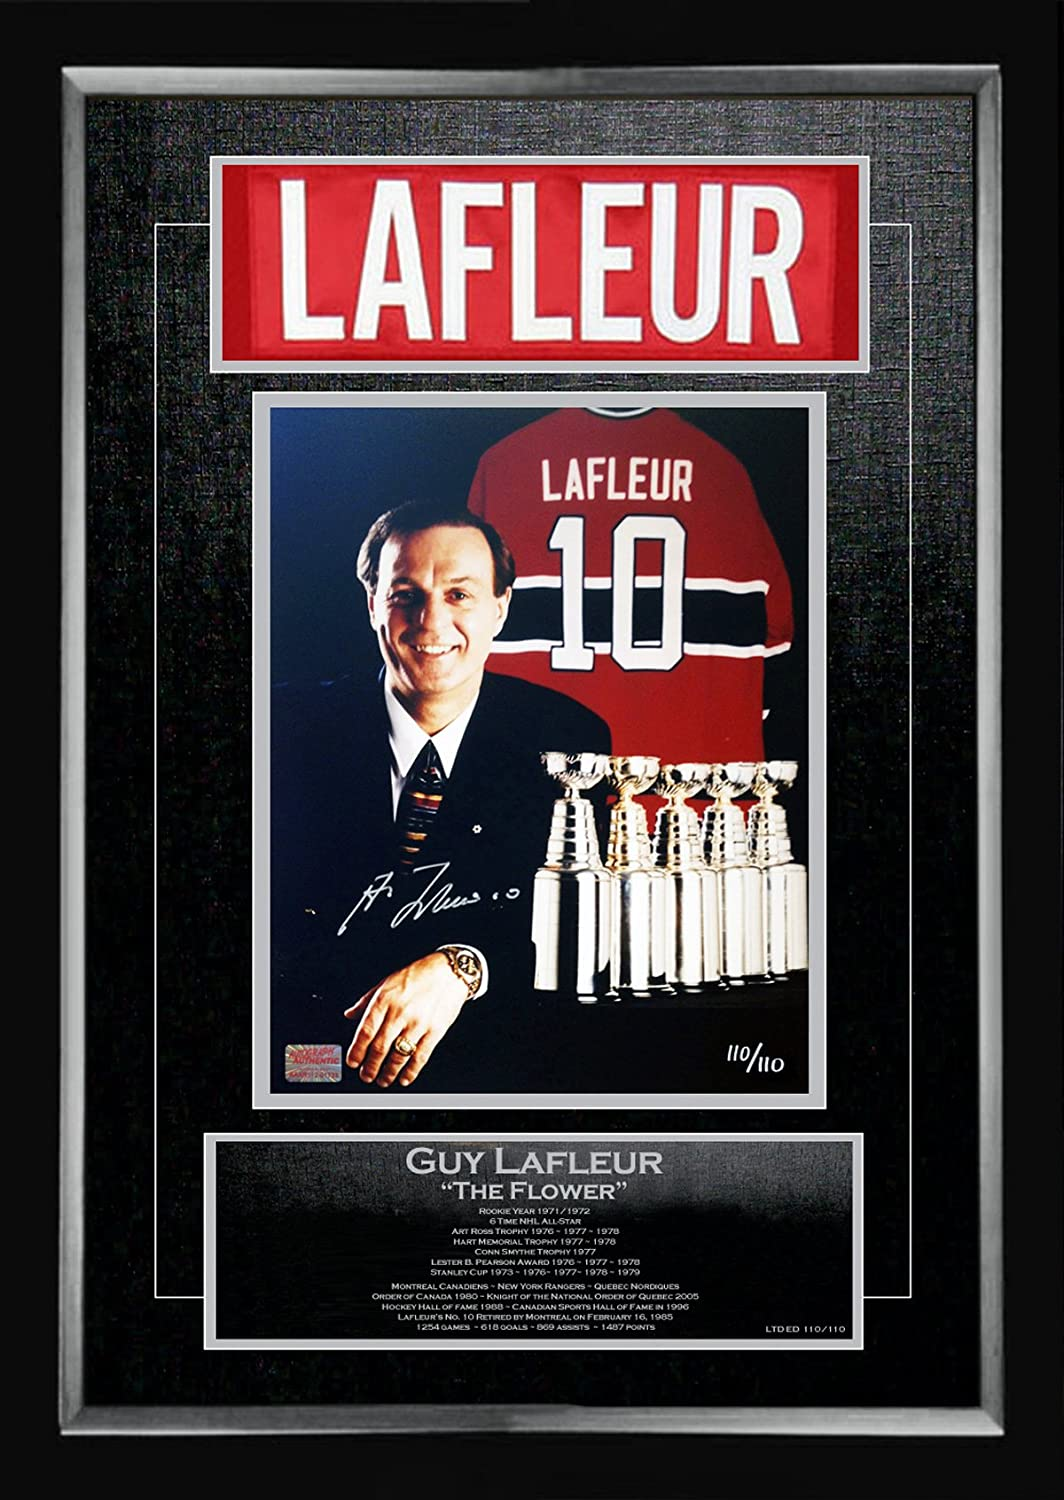 Guy Lafleur Career Collectible Namebar Ltd Ed  110 of 110  Museum Framed